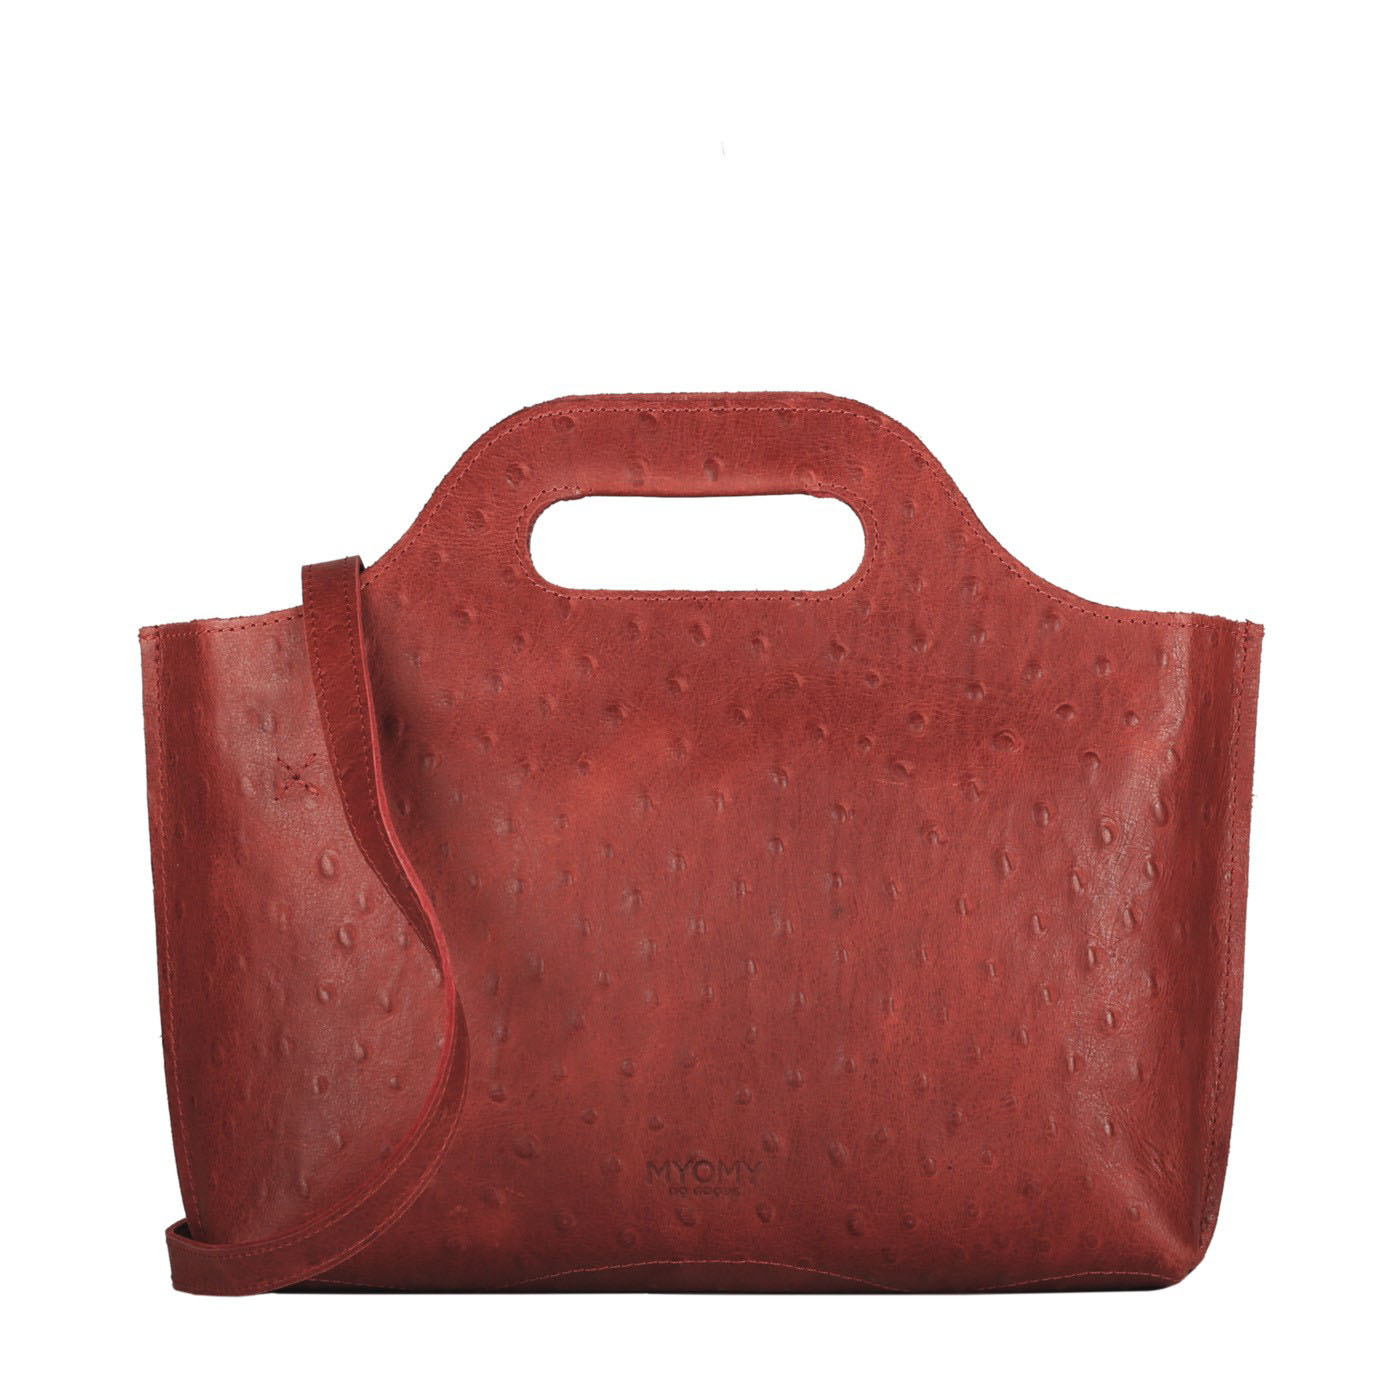 MY CARRY BAG Mini – ostrich red